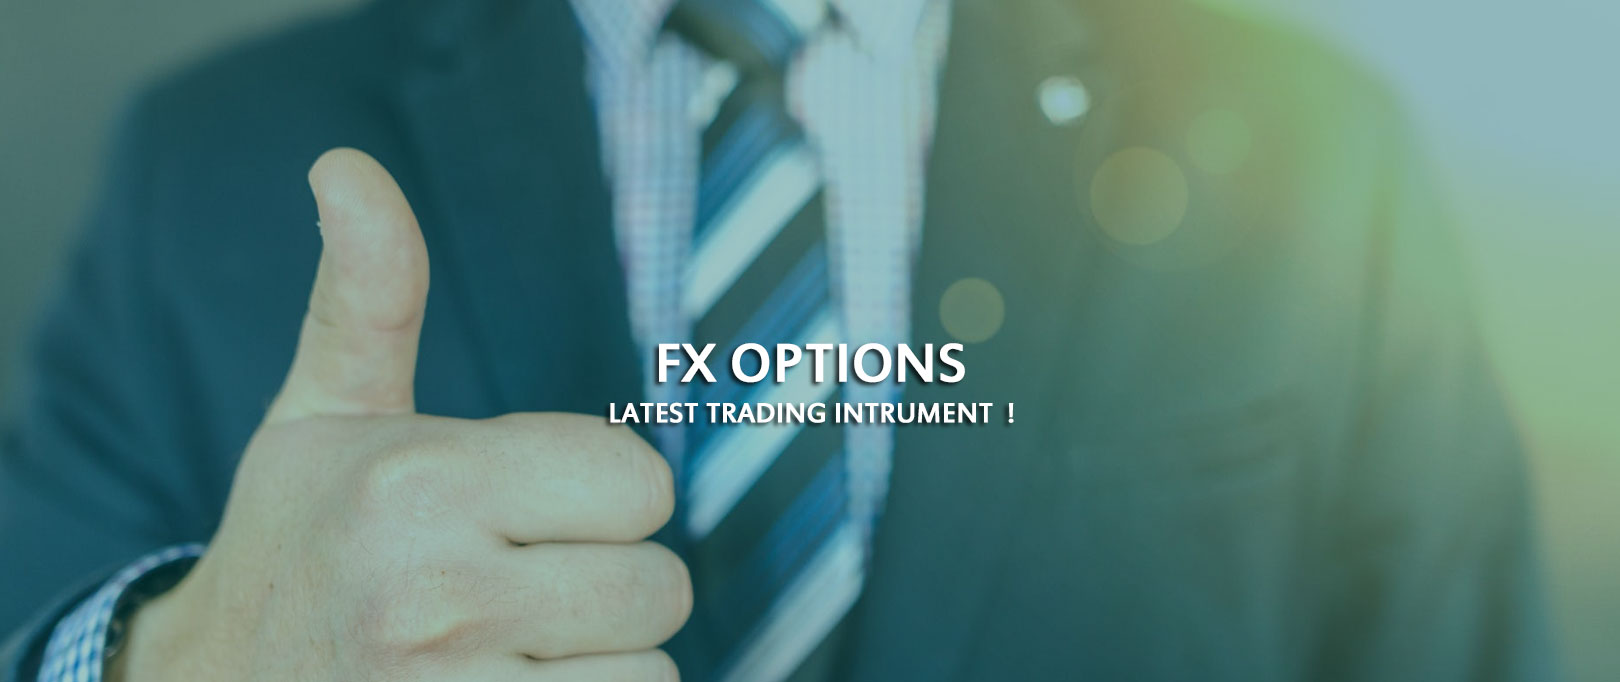 FX Options by IQ Option Broker – A combination of Forex and Option based asset for trading